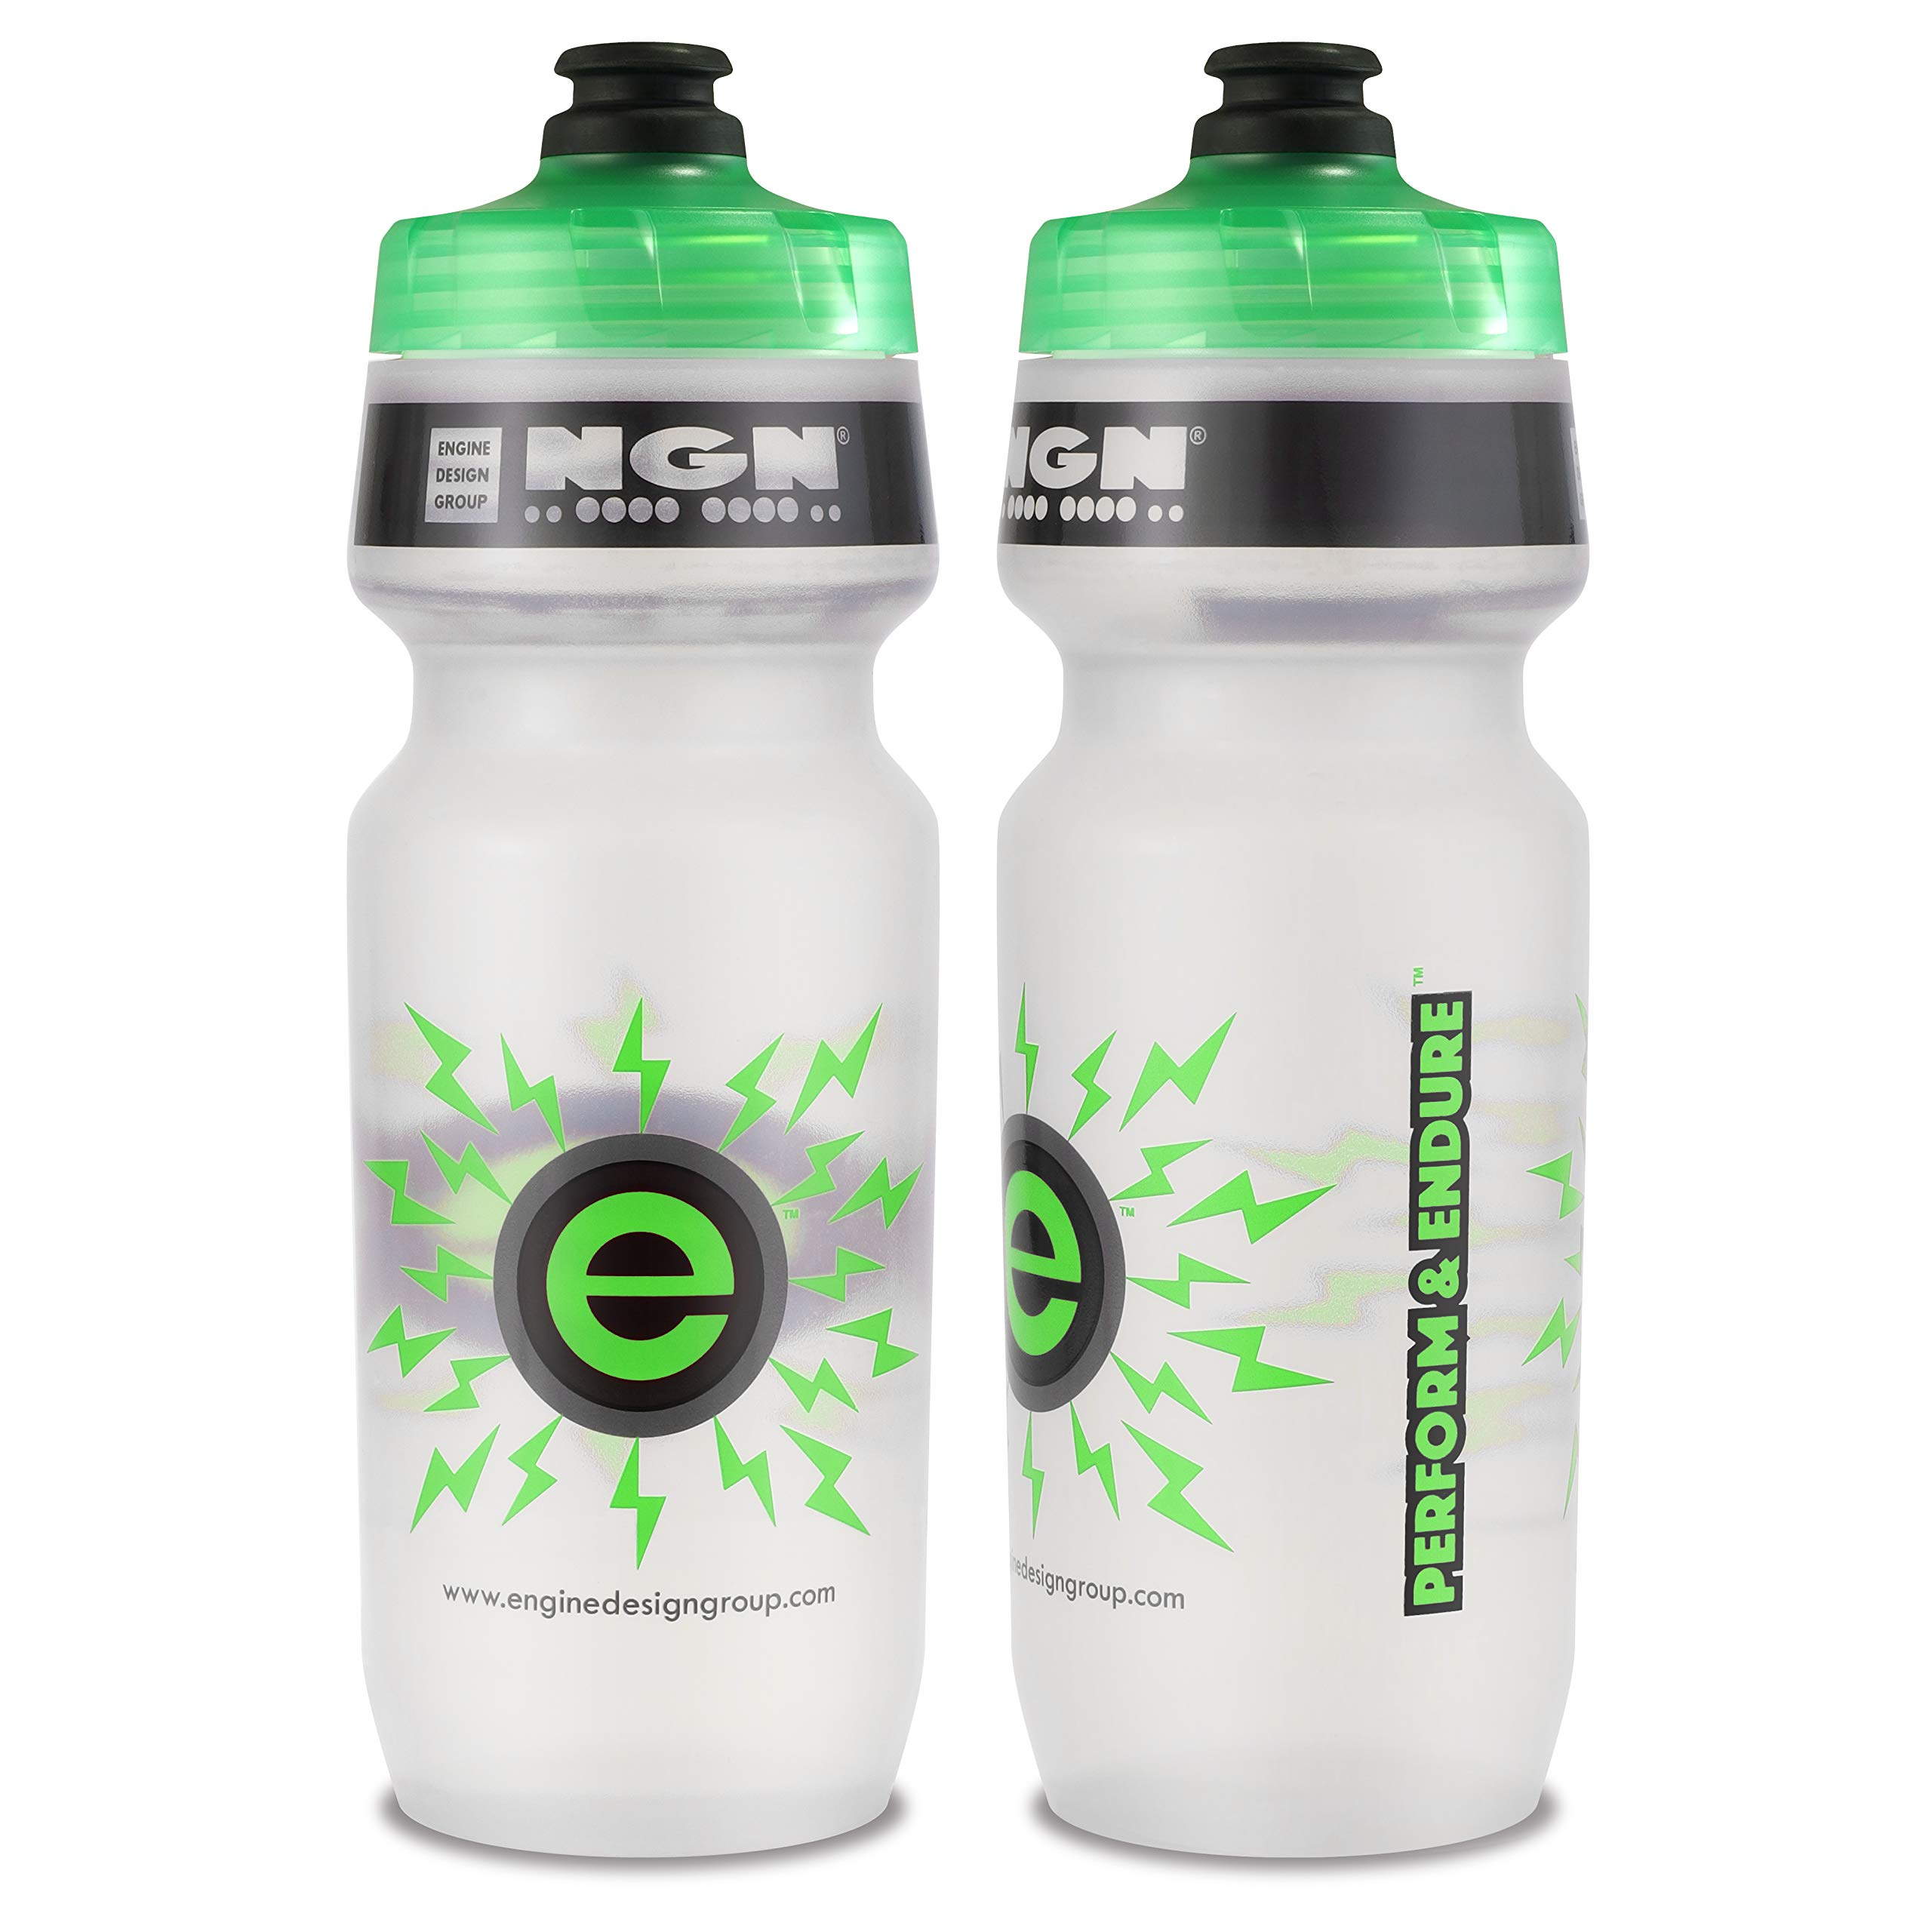 Engine Design Group NGN Sport - High Performance Bicycle/Bike Water Bottle for Triathlon, MTB, and Road Cycling - 24 oz (Clear/Green 2-Pack) by Engine Design Group